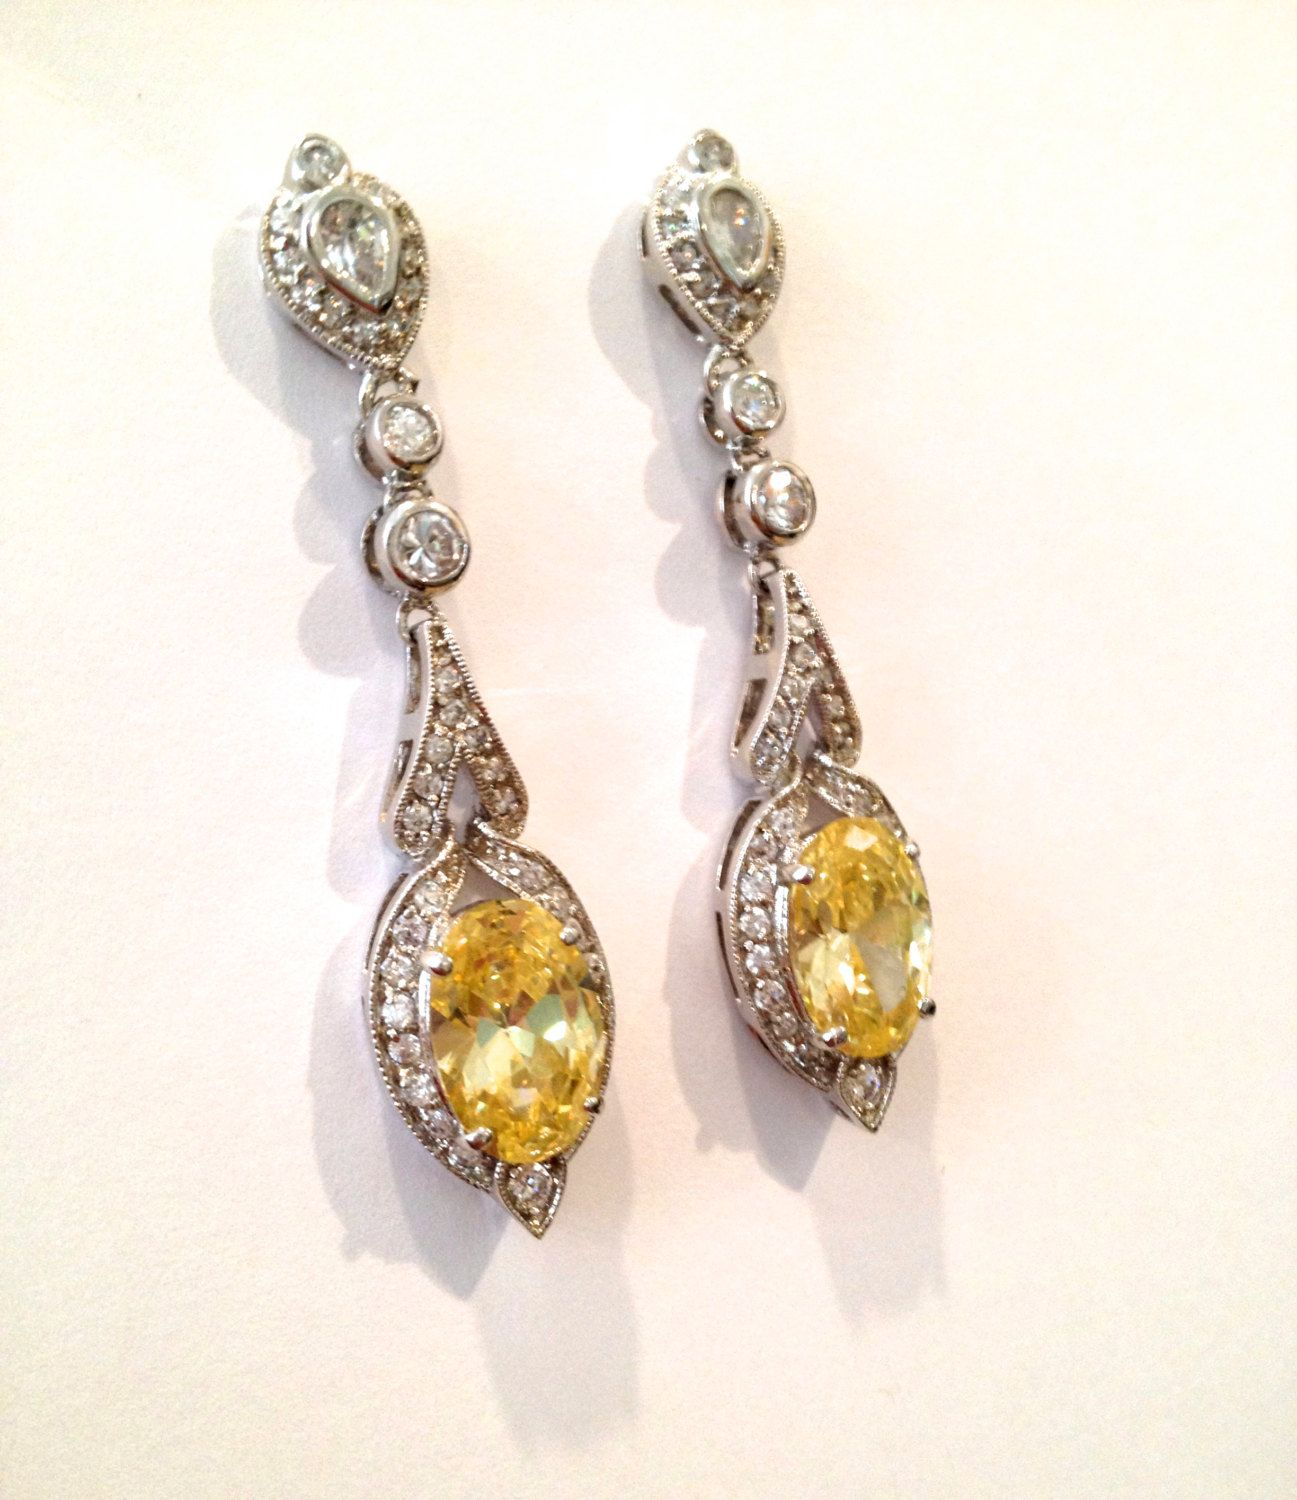 Vintage Citrine And Pave Estate Jewelry Earrings Via Etsy